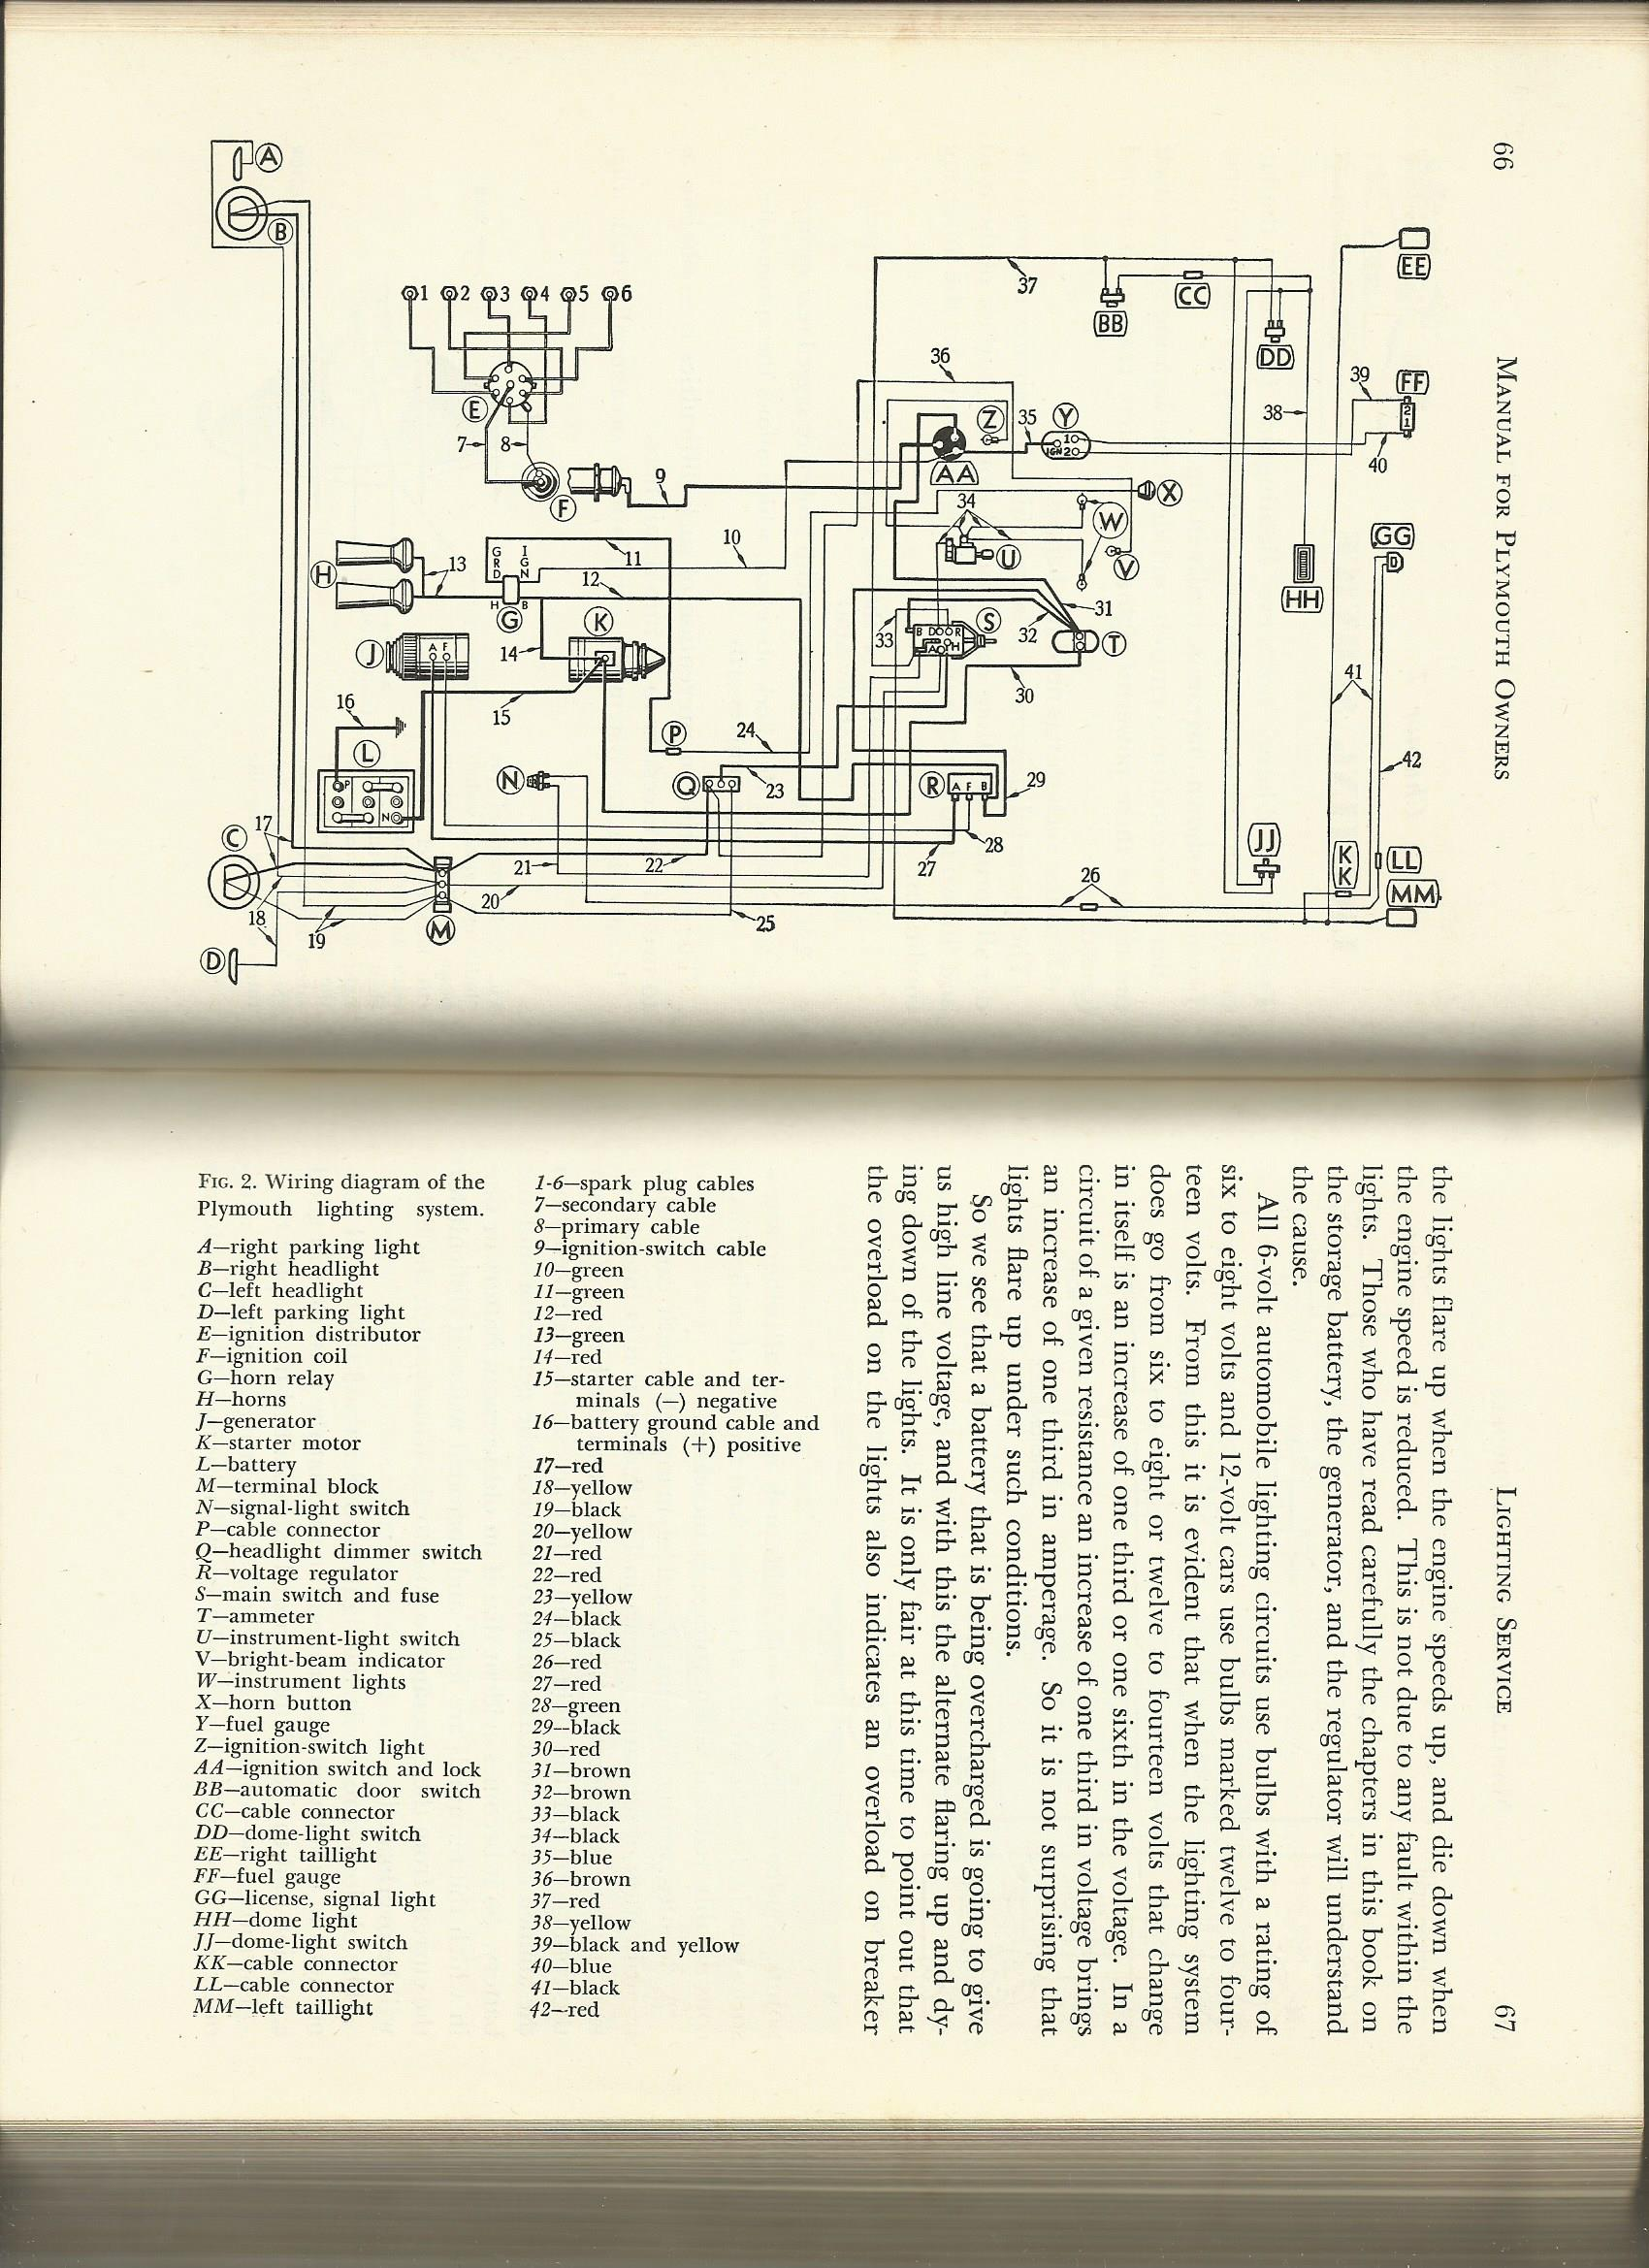 12 volt conversion wiring diagram 1951 plymouth